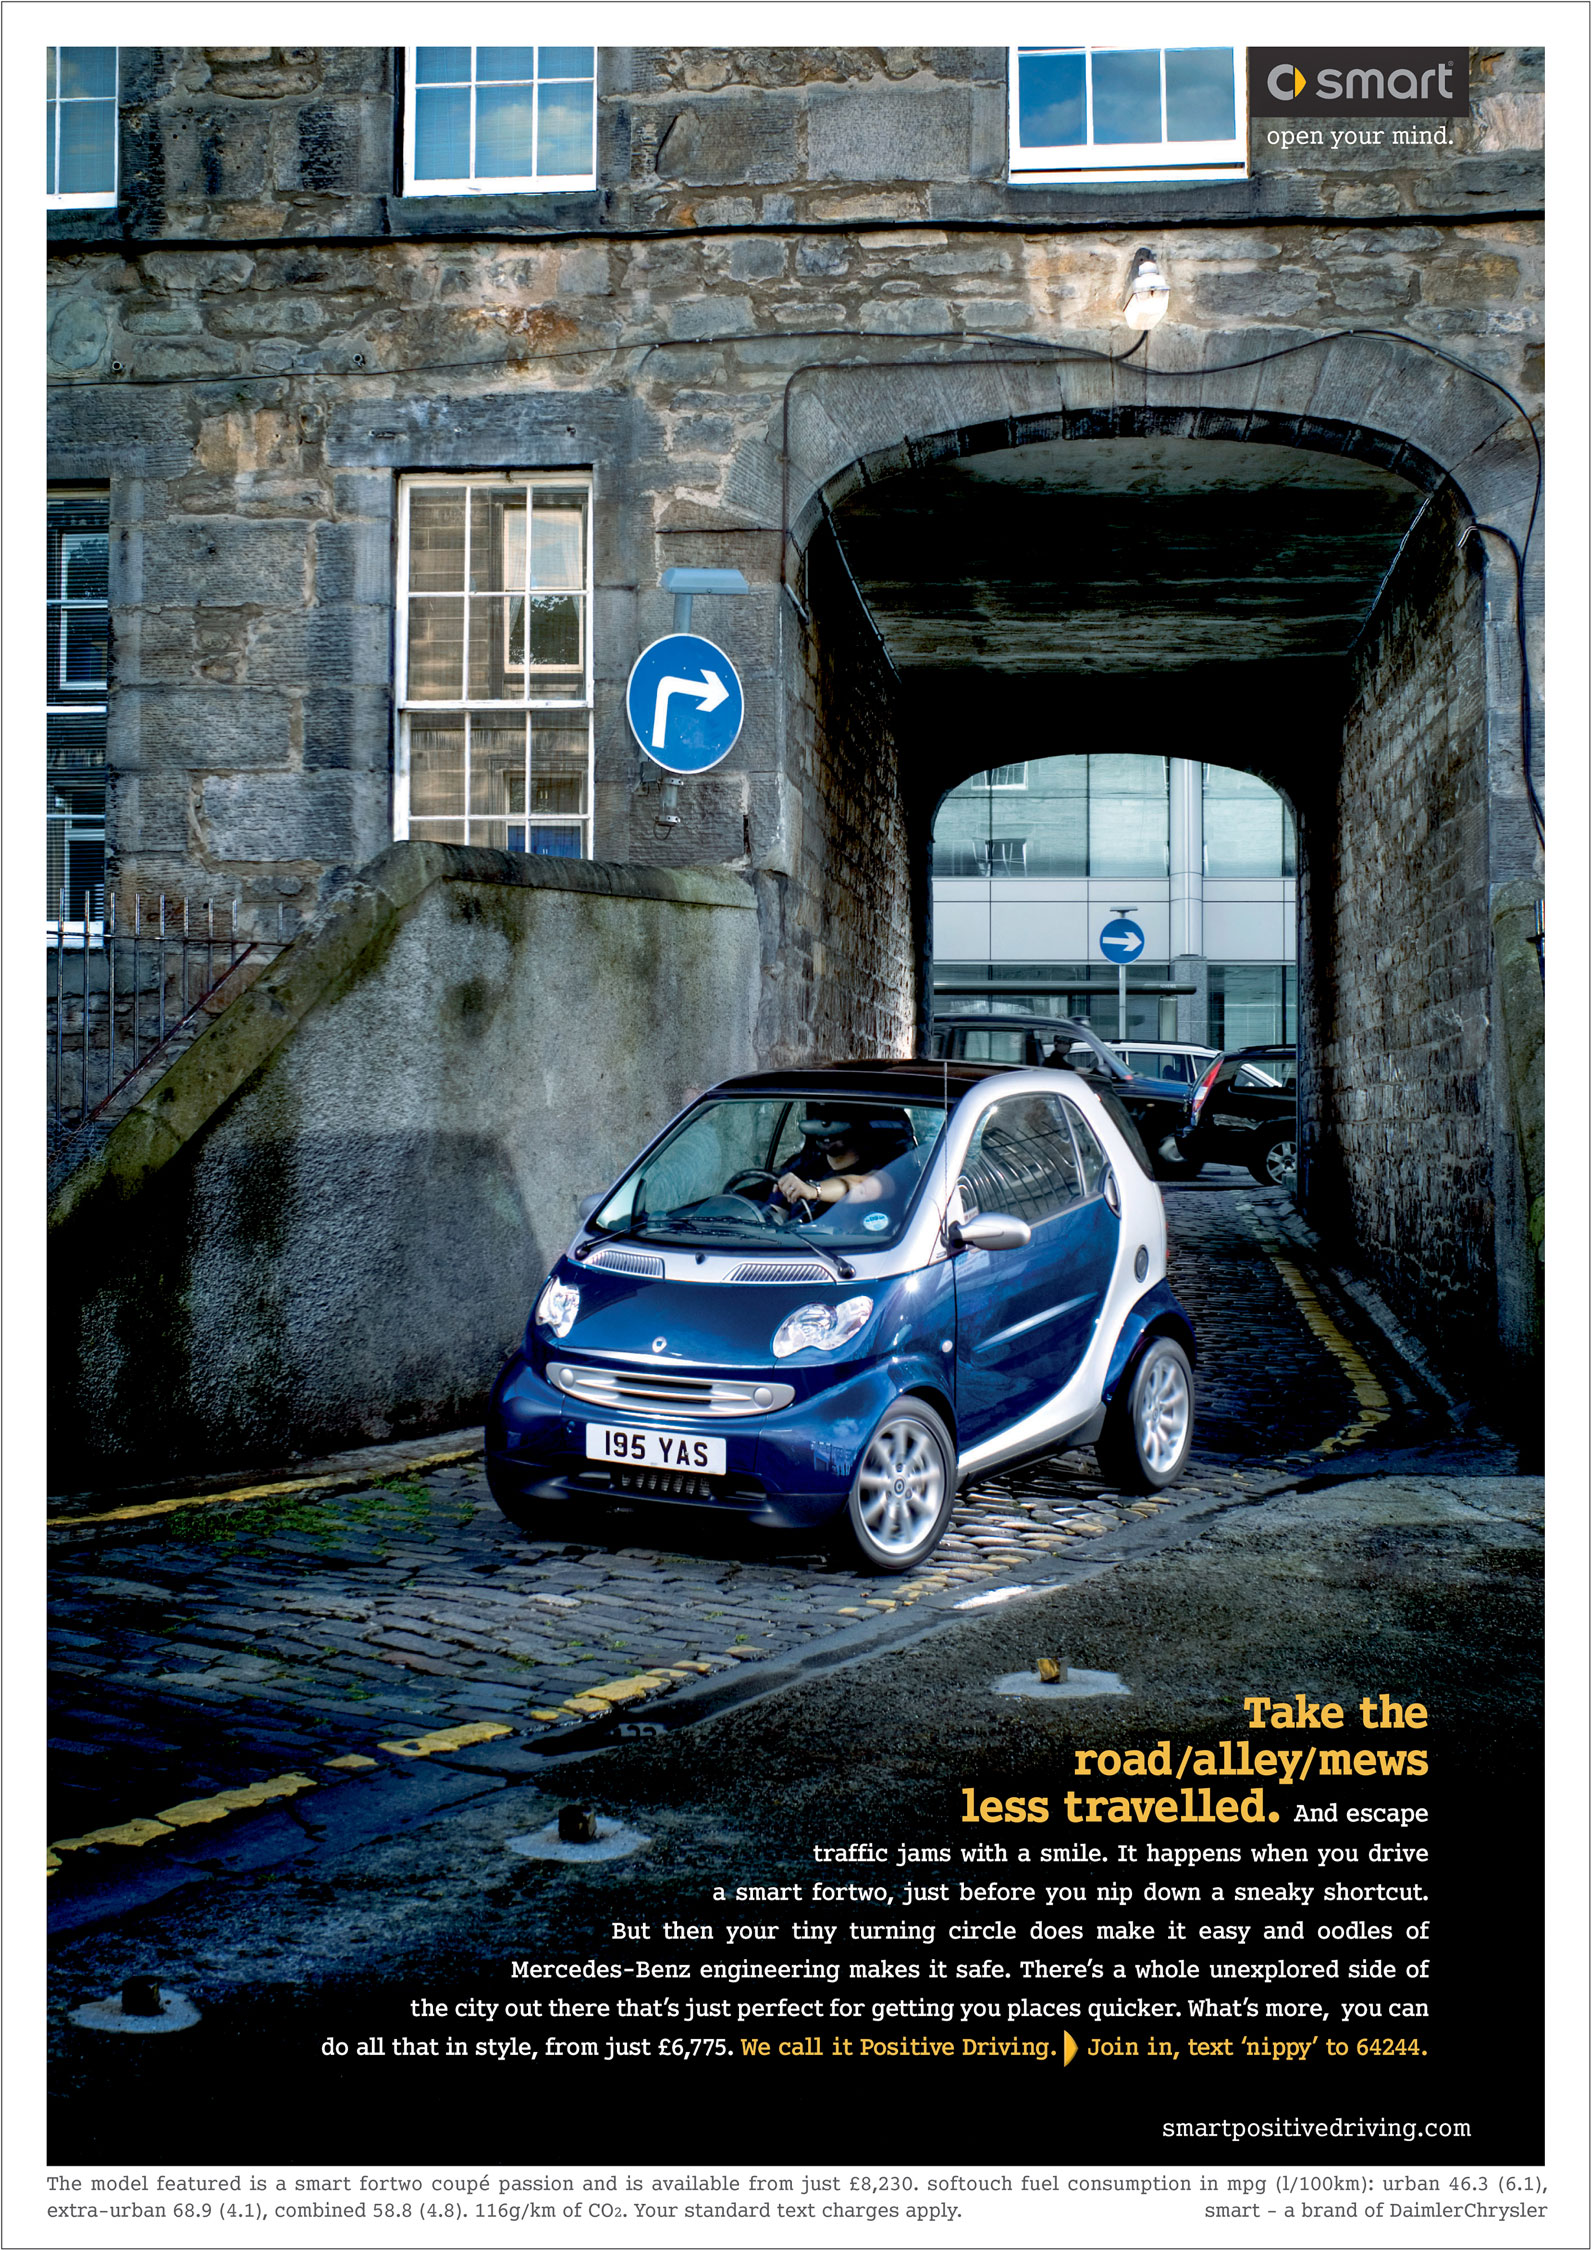 Blue Smart car driving down narrow alley in edinburgh scotland